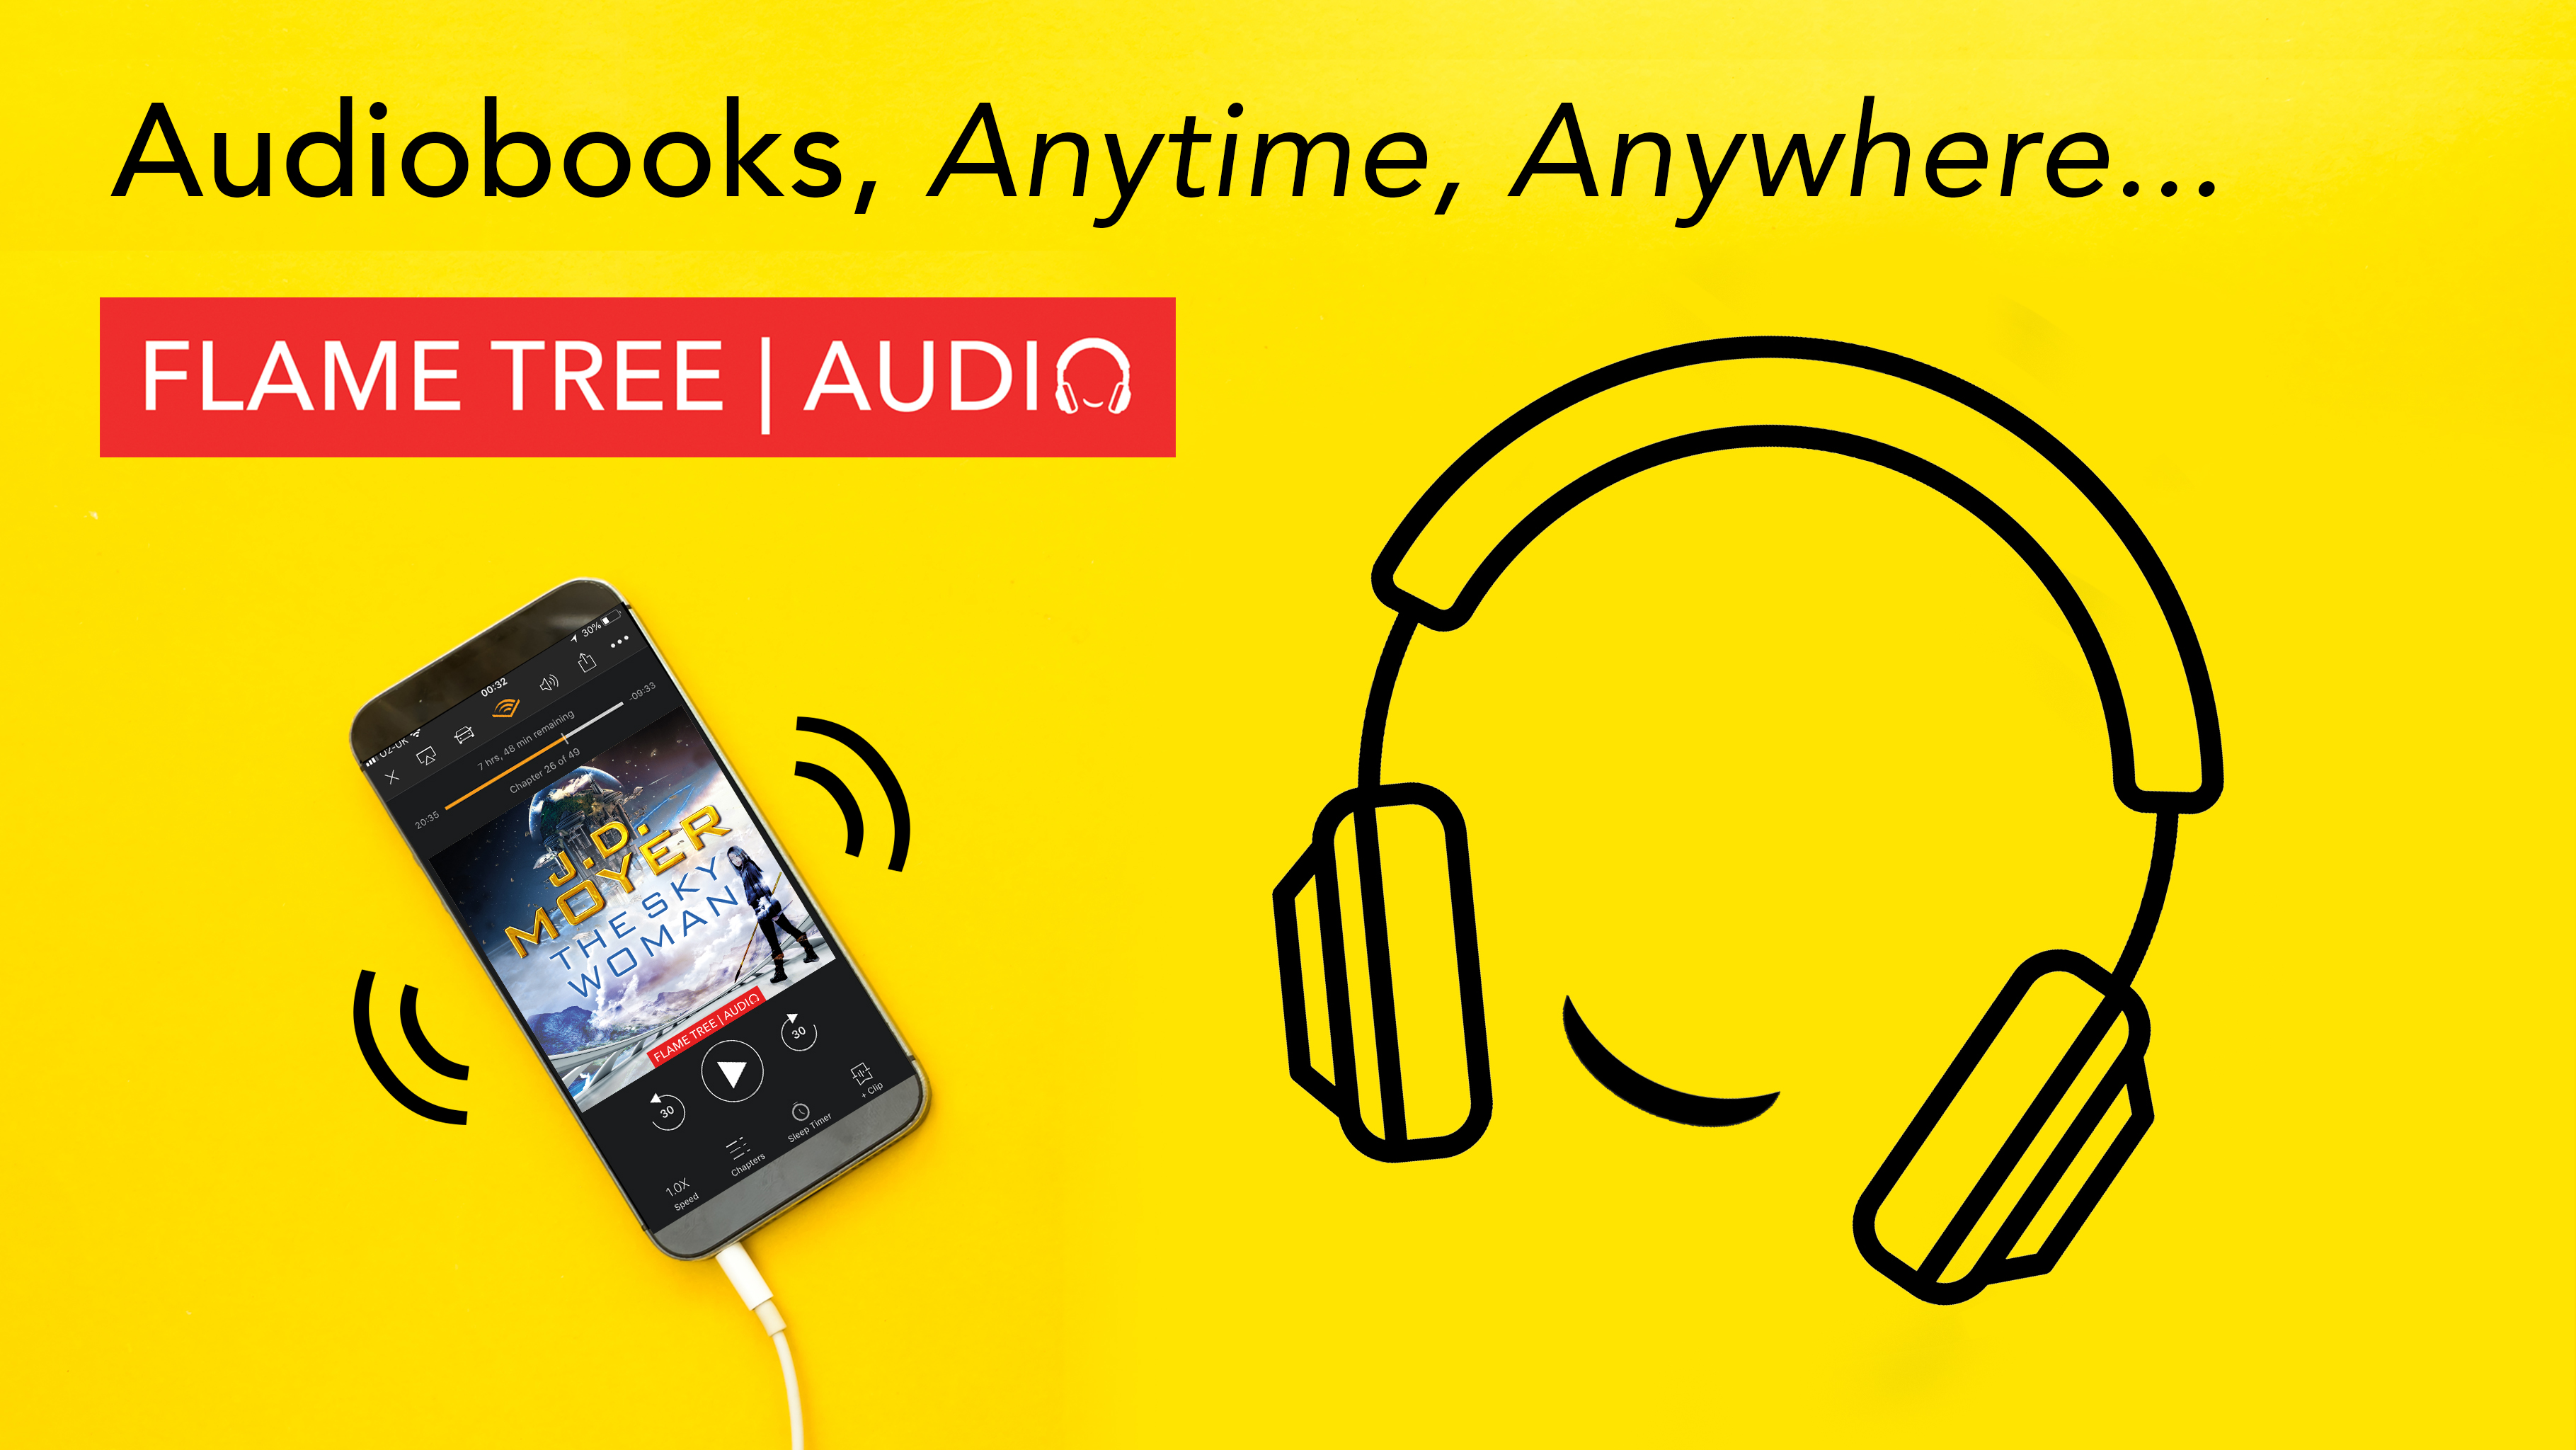 Flame Tree Audiobooks, anytime, anywhere, The Sky Woman